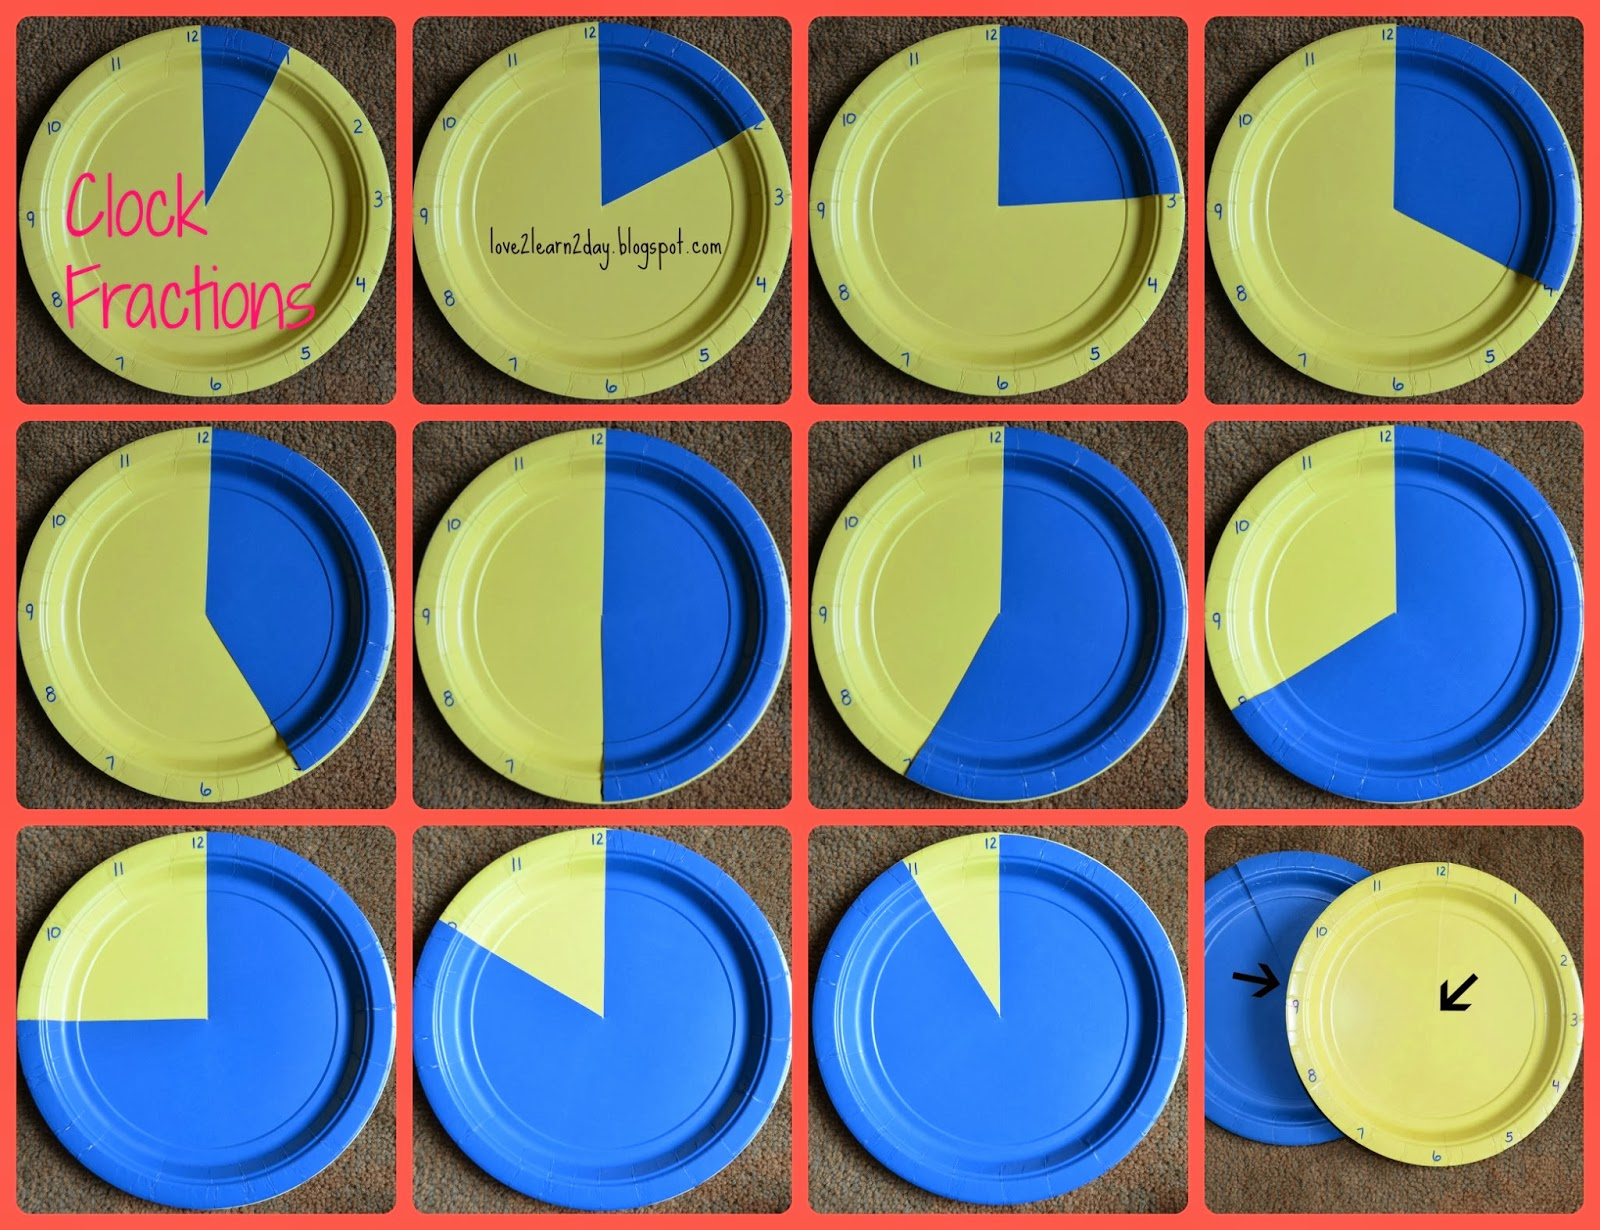 Love2learn2day Fraction Addition Made Easy Clocks